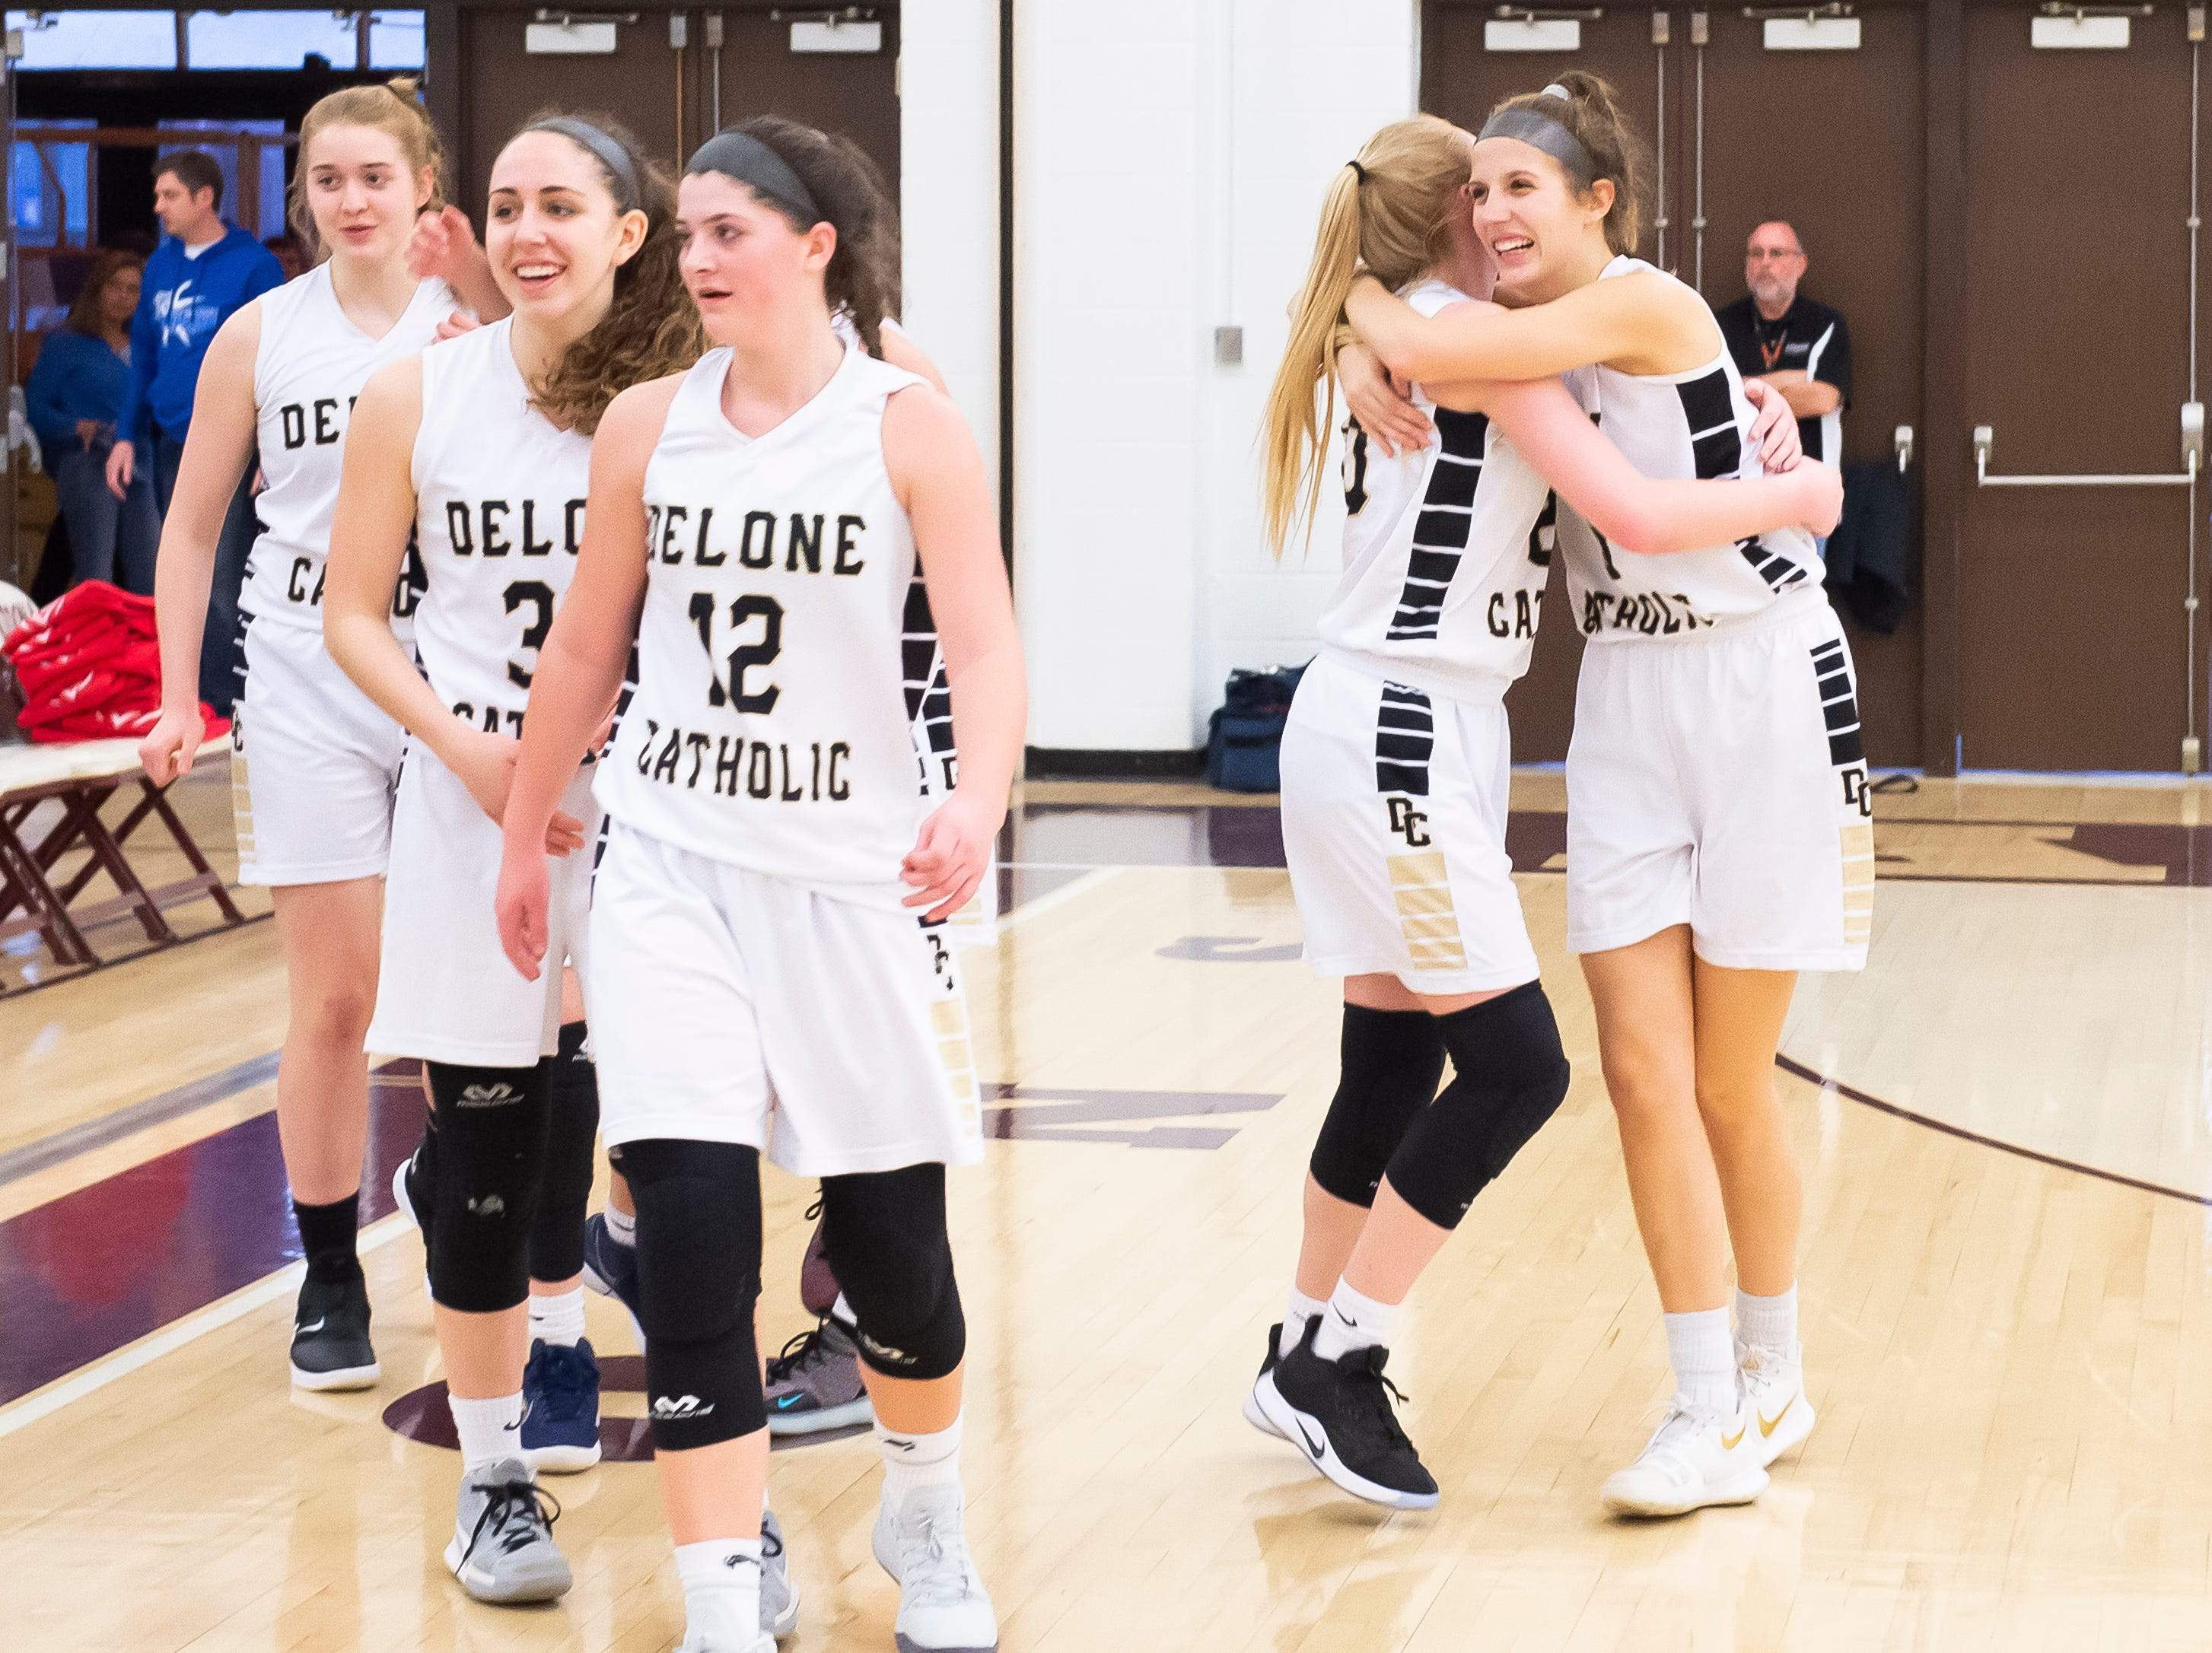 Delone Catholic's Maggie Wells and Brooke Lawyer hug after defeating Neshannock in a PIAA 3A quarterfinal in Altoona, Pa., on Friday, March 15, 2019. The Squirettes won 50-41.